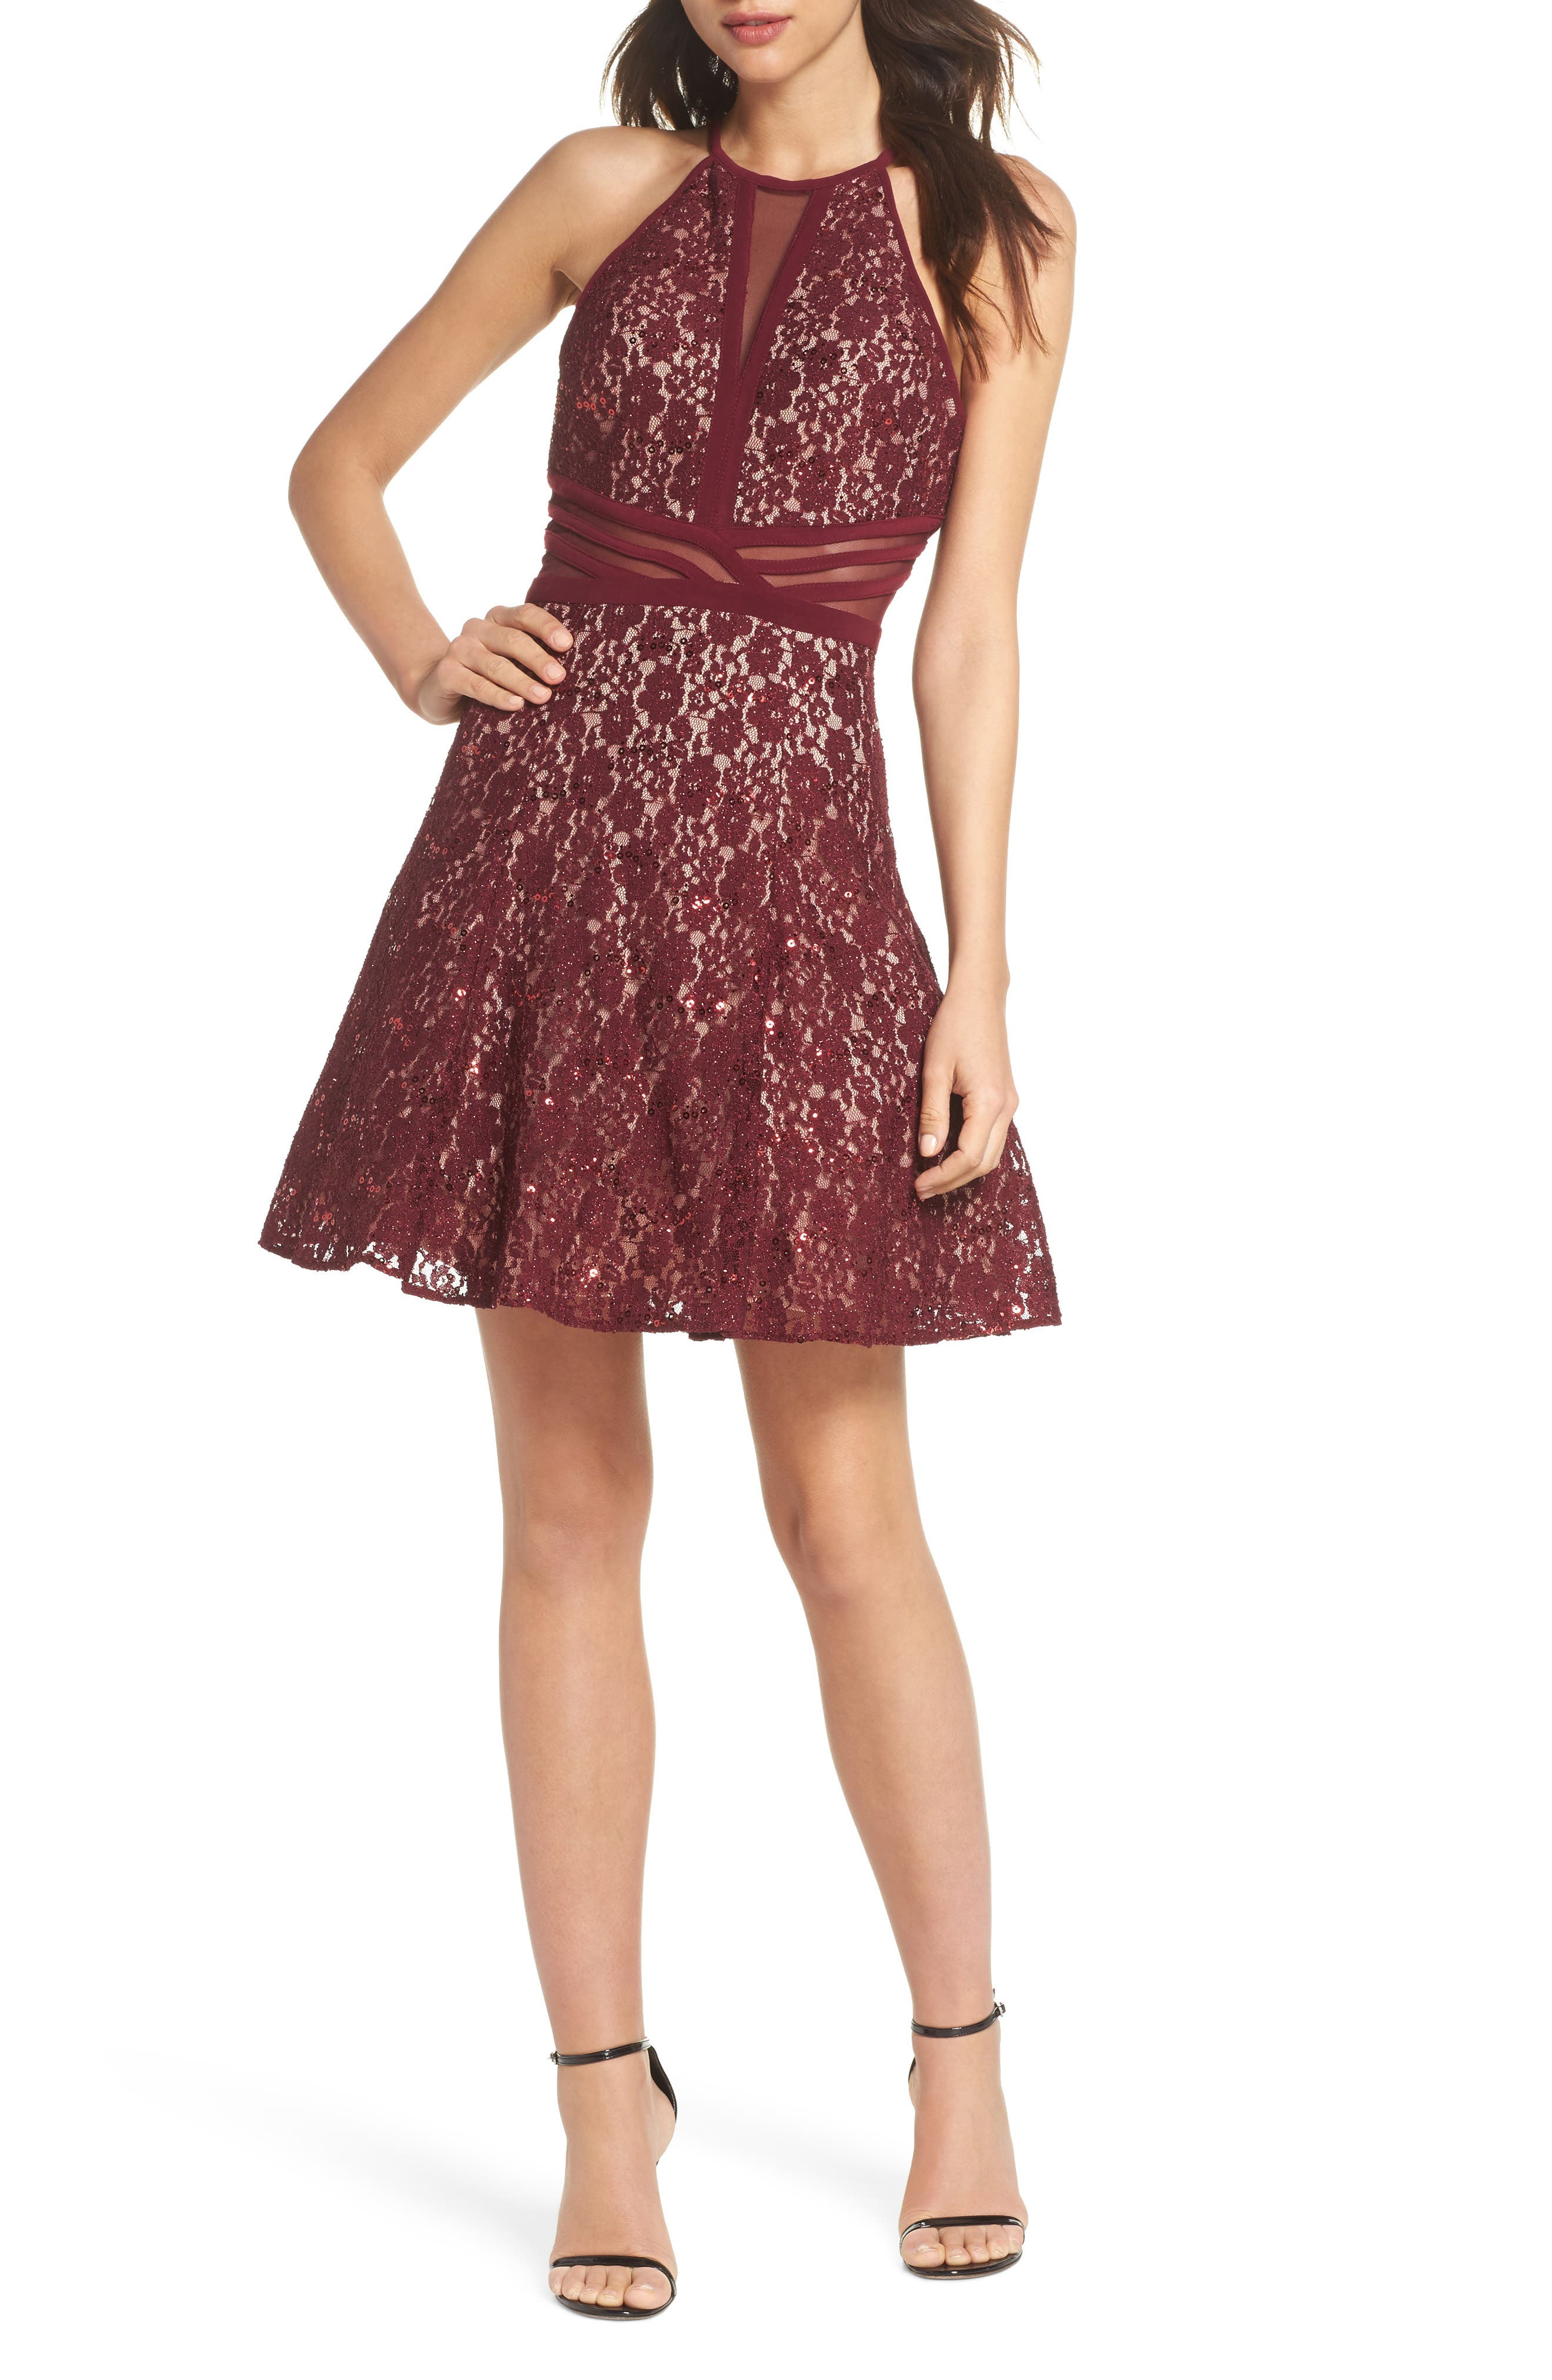 Morgan & Co. Sheer Inset Lace Fit & Flare Dress, /6 - Burgundy